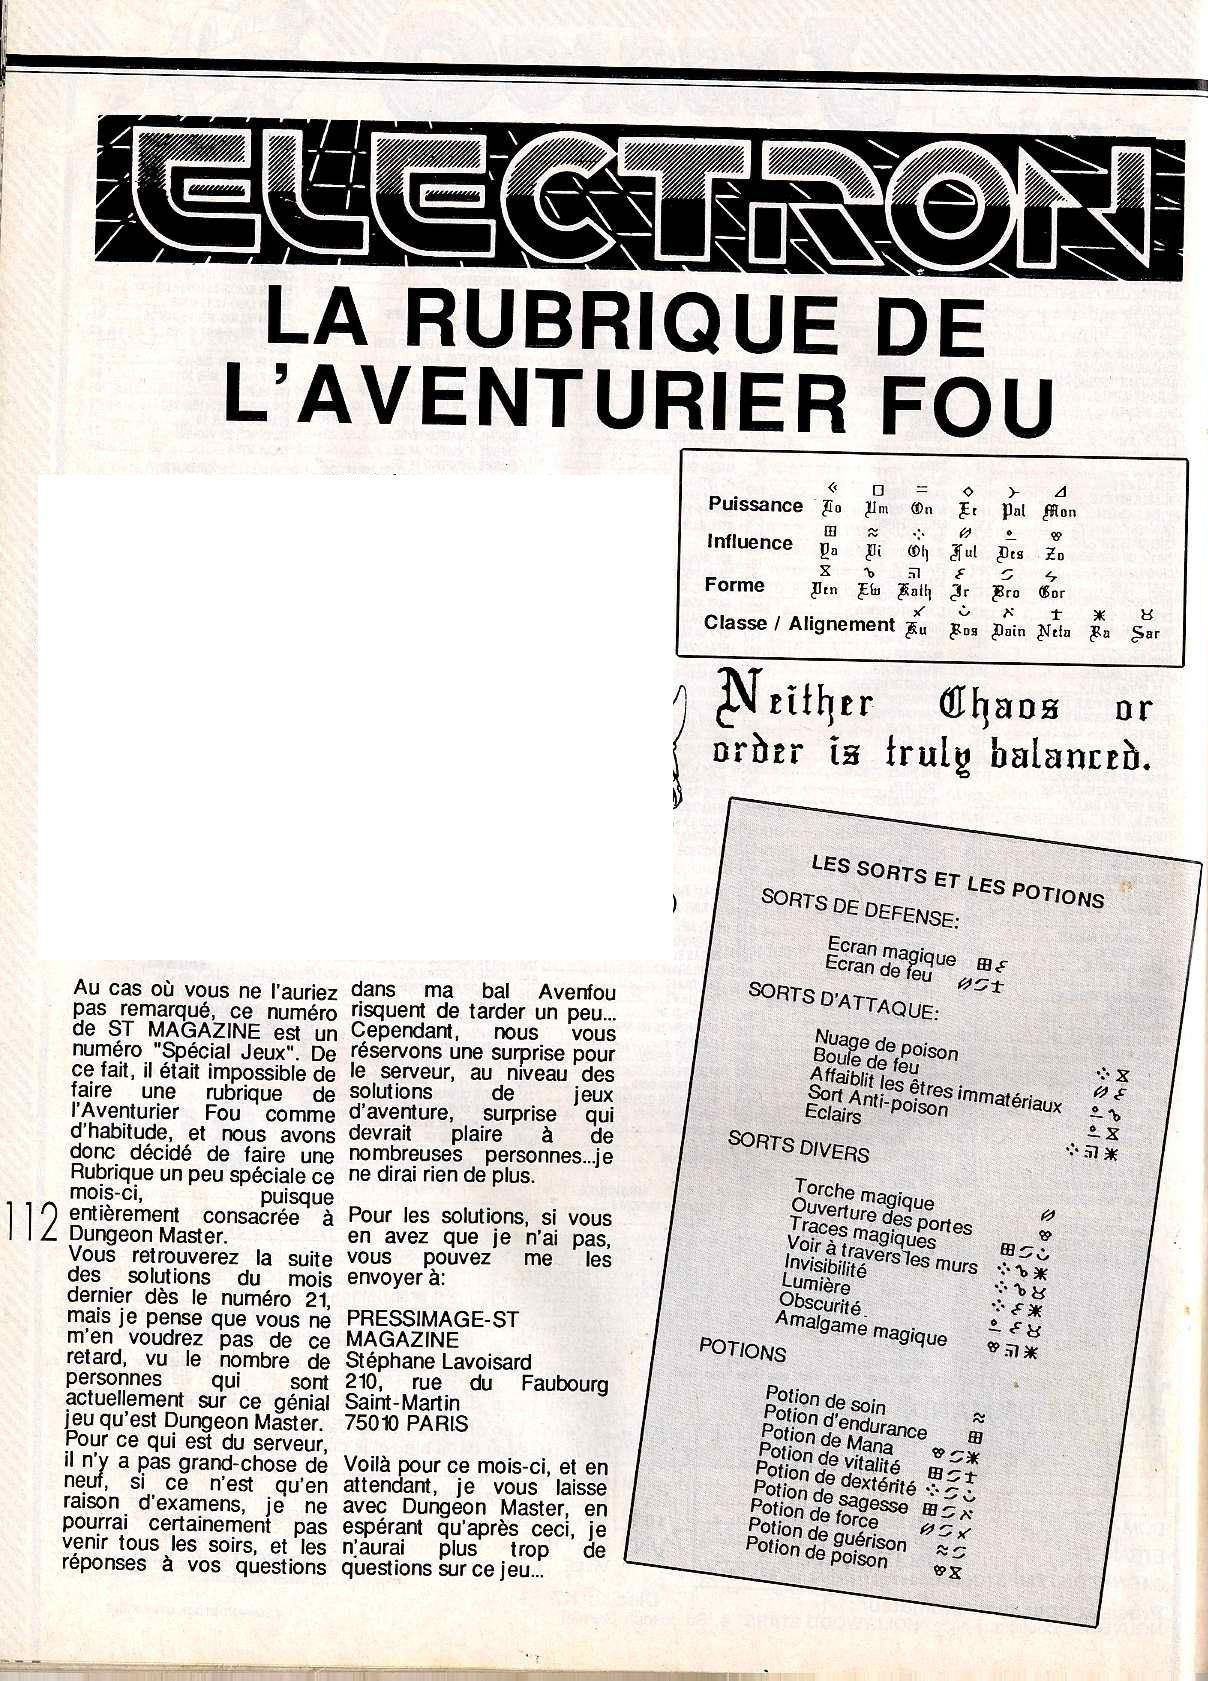 Dungeon Master for Atari ST Guide published in French magazine 'ST Magazine', Issue #20 June 1988, Page 112